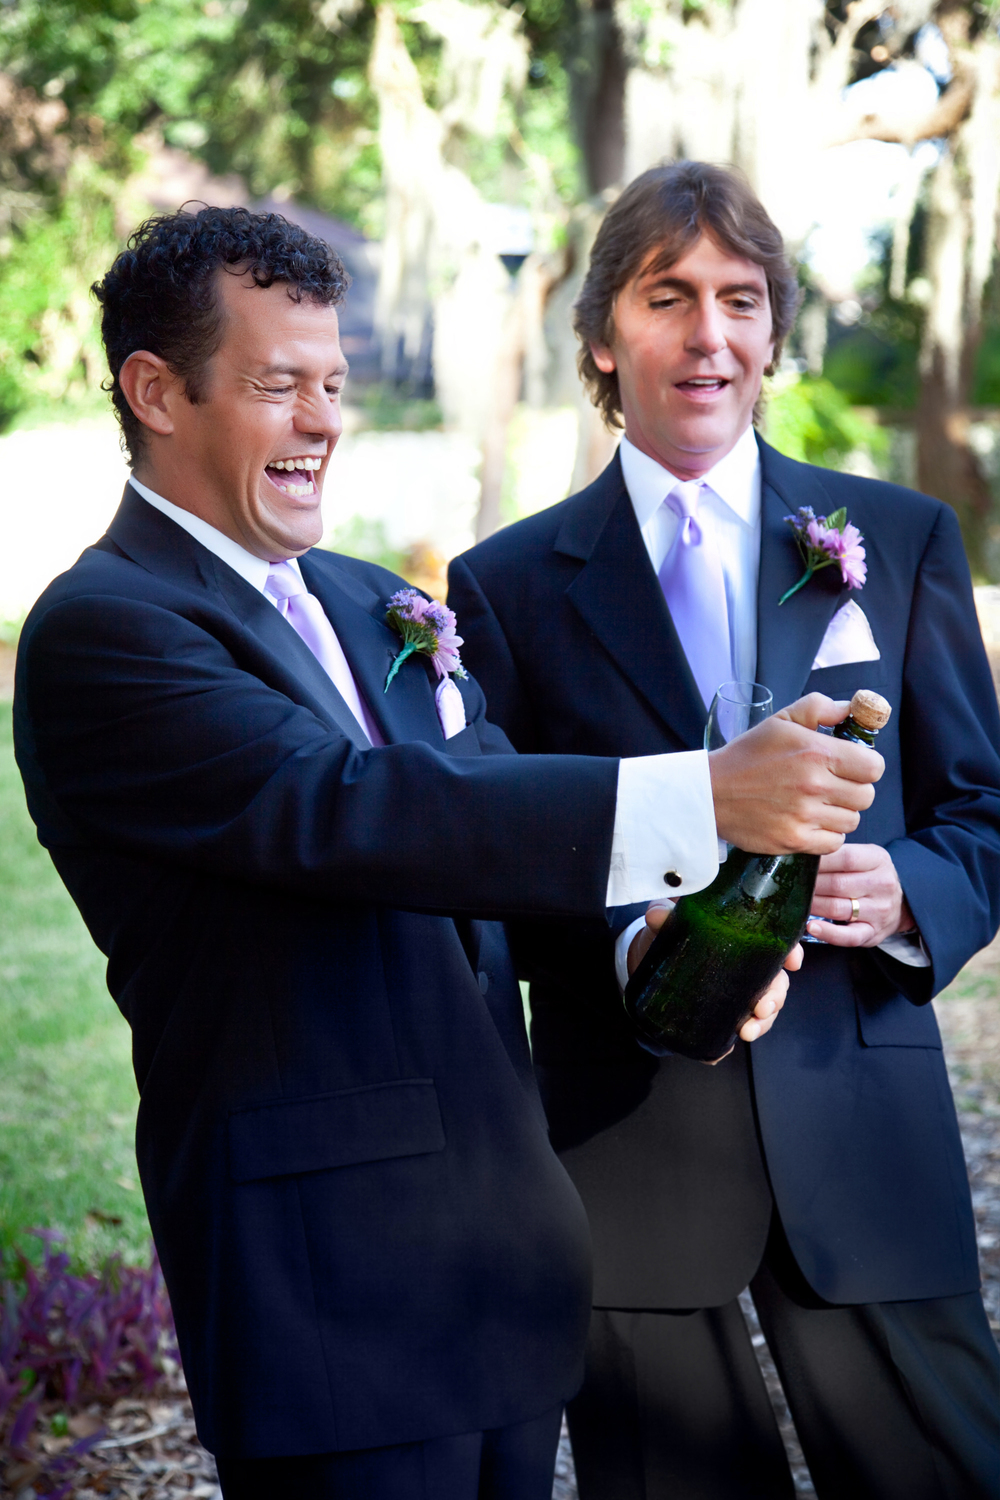 wedding-officiant-gay-couple-opening-champagne-l.jpg